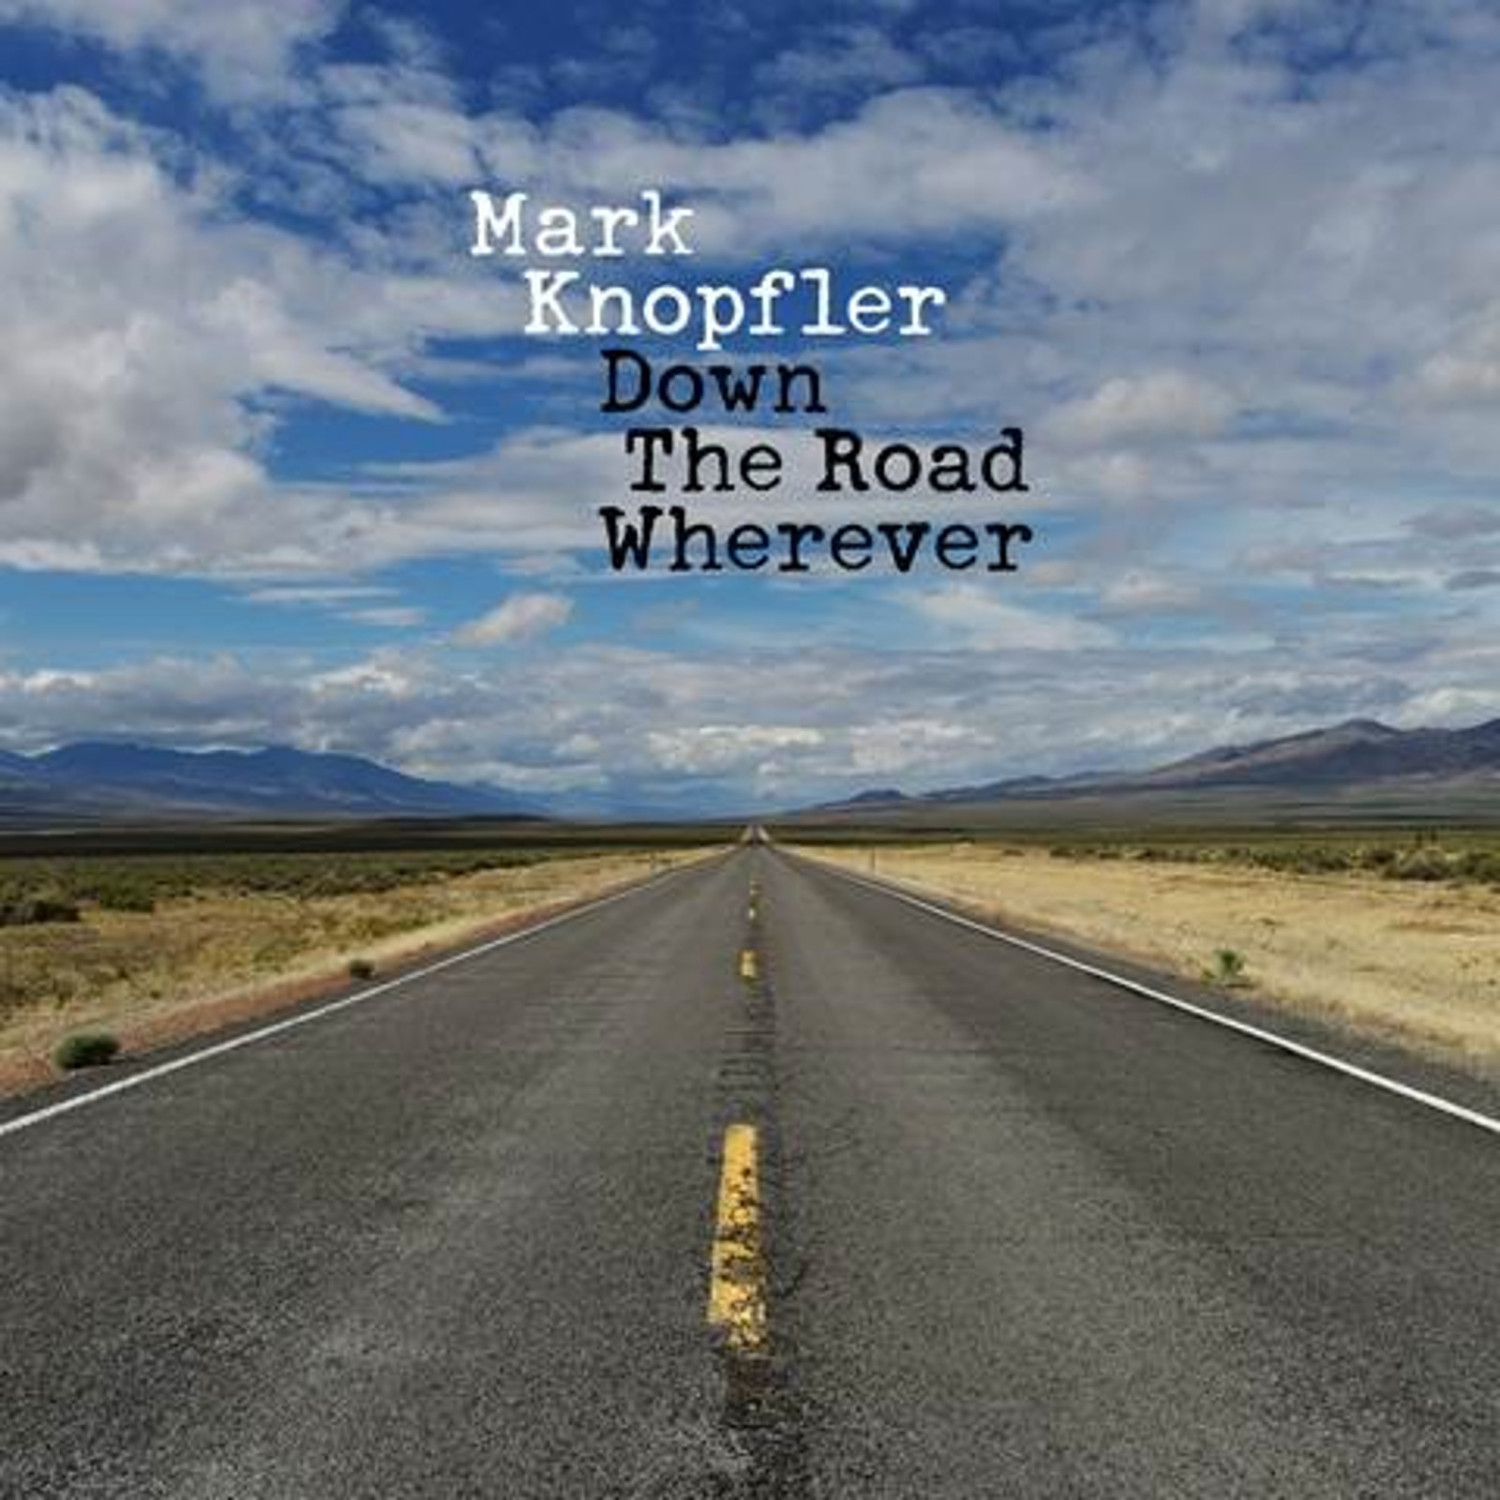 Mark Knopfler - Down the Road wherever (Deluxe Edition) (CD)